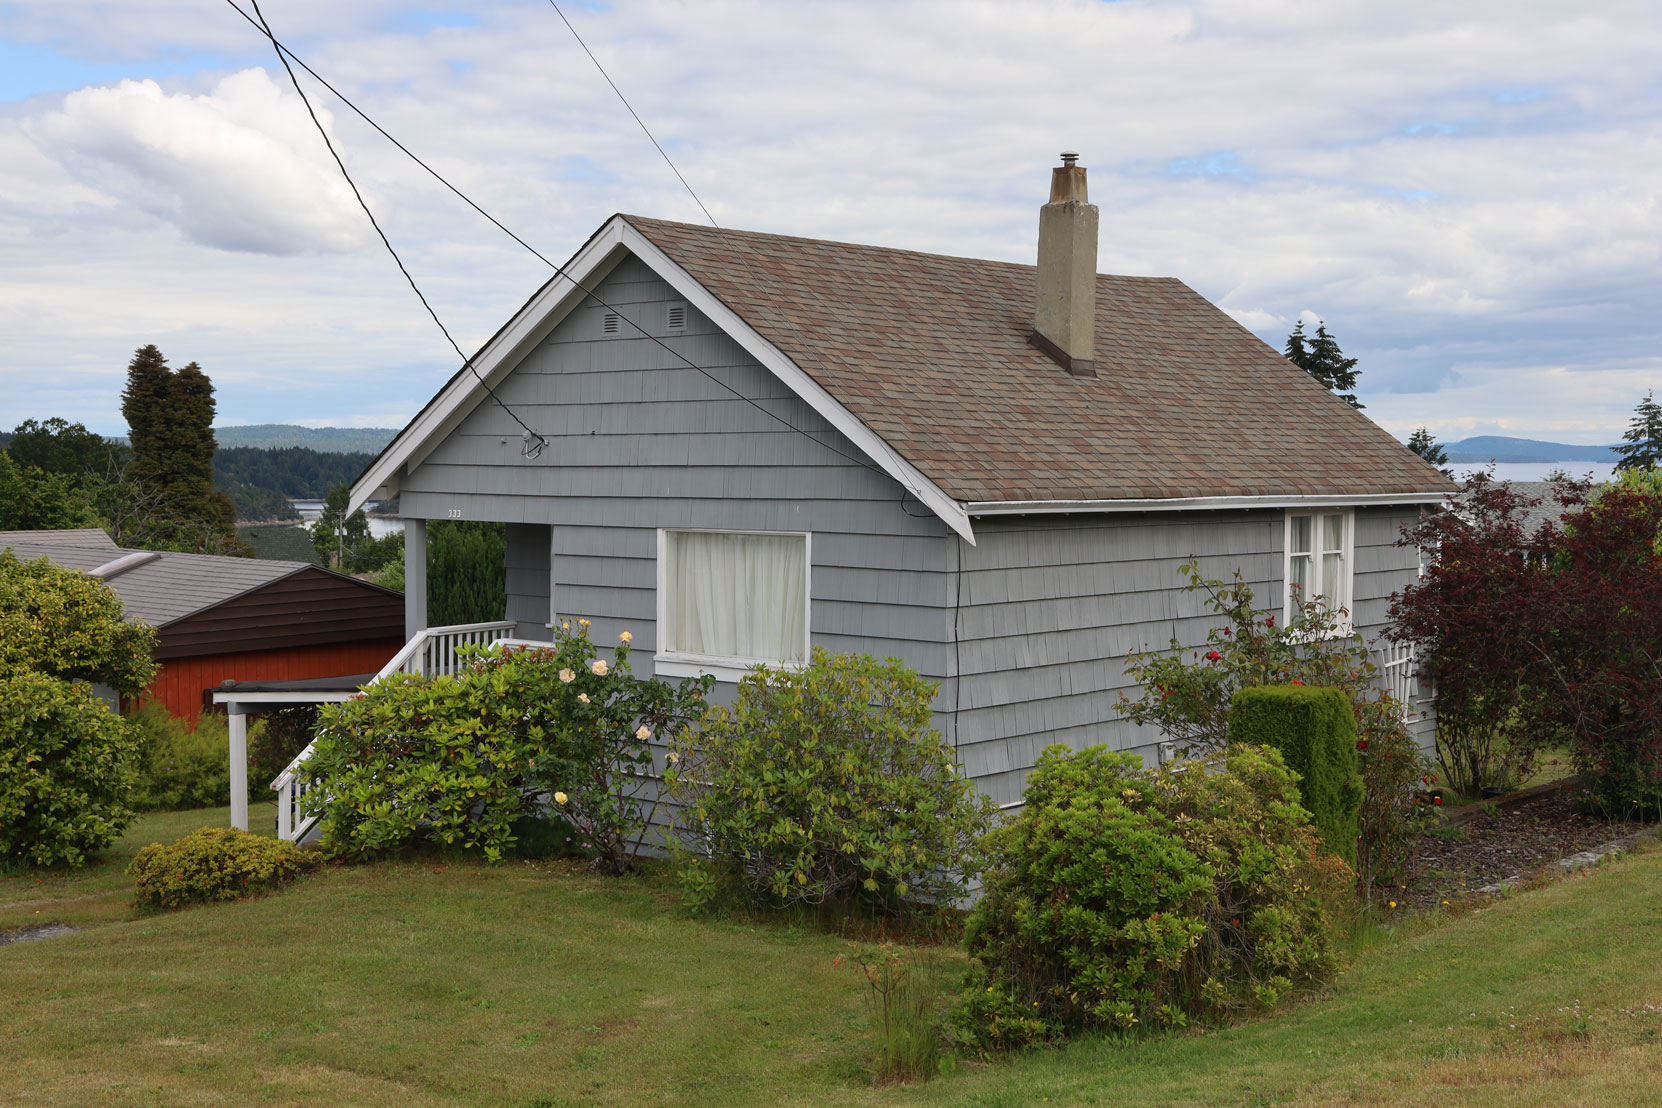 333 Methuen Street, Ladysmith, BC, built in 1941 (photo: Mark Anderson)